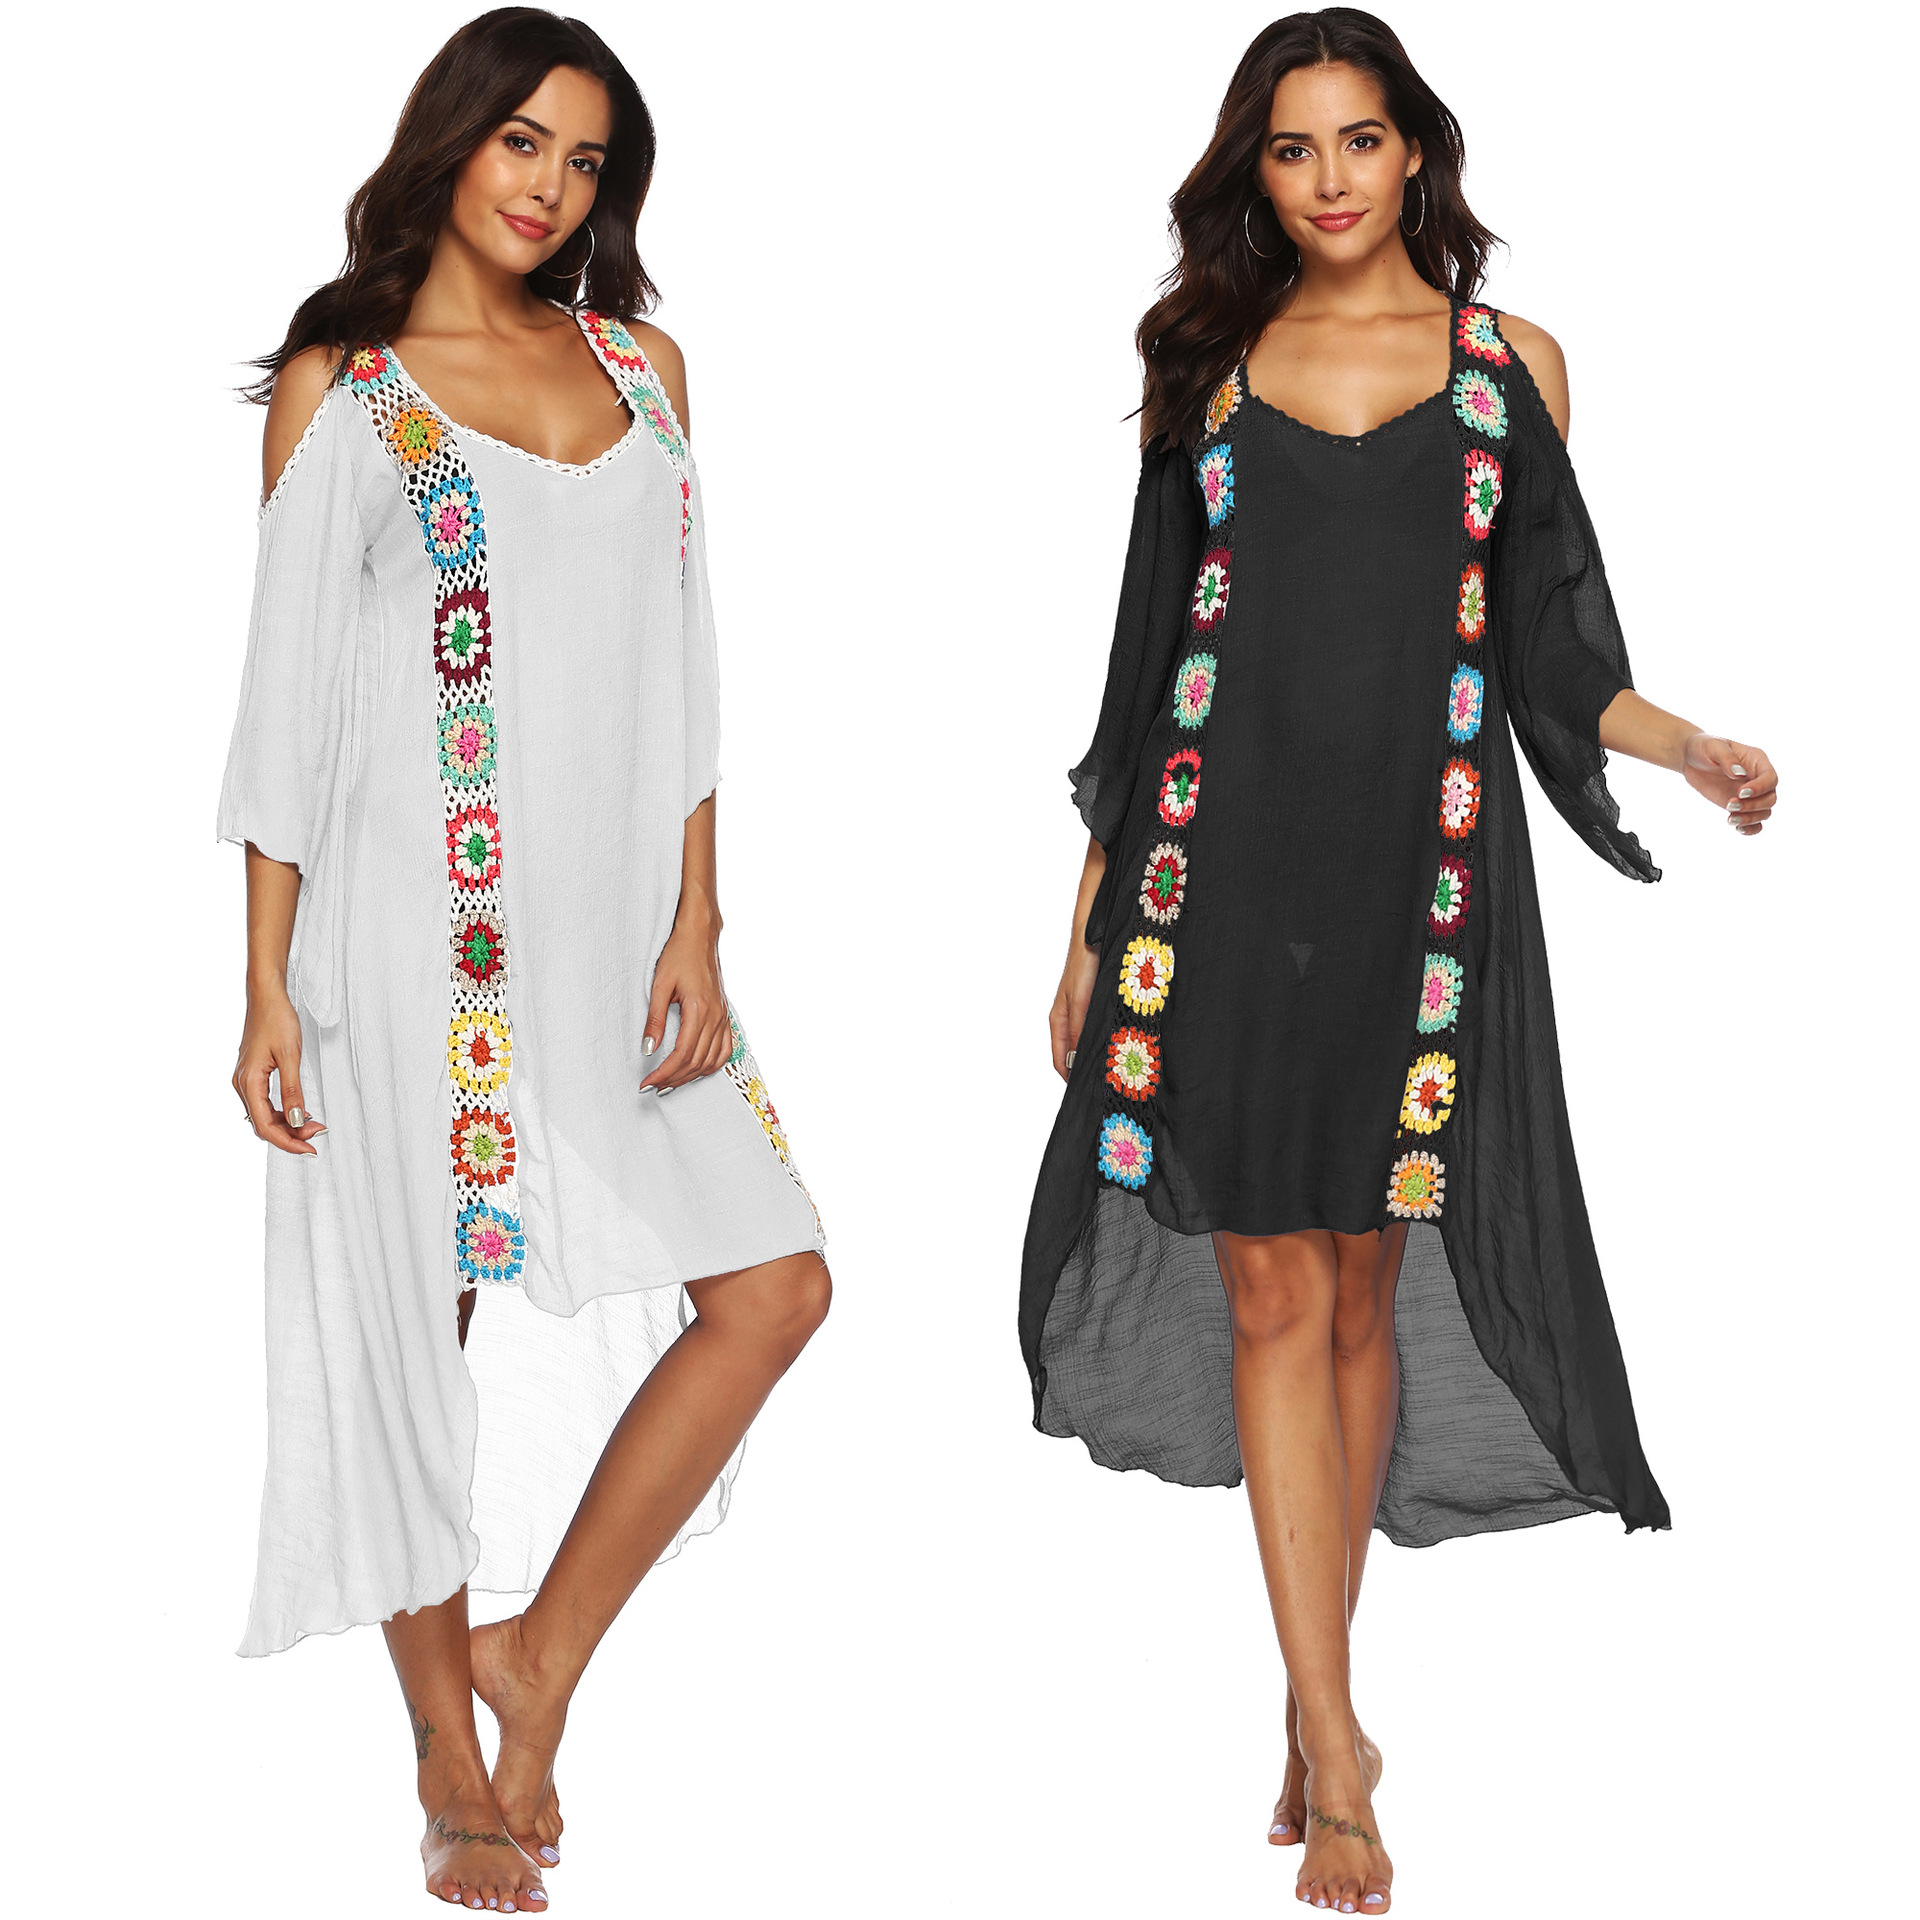 Swimsuit Cover Up Tunics For Beach Swim Suit Woman Dresses 2019 Summer Clothes Women Features Irregular Smock Dress Female